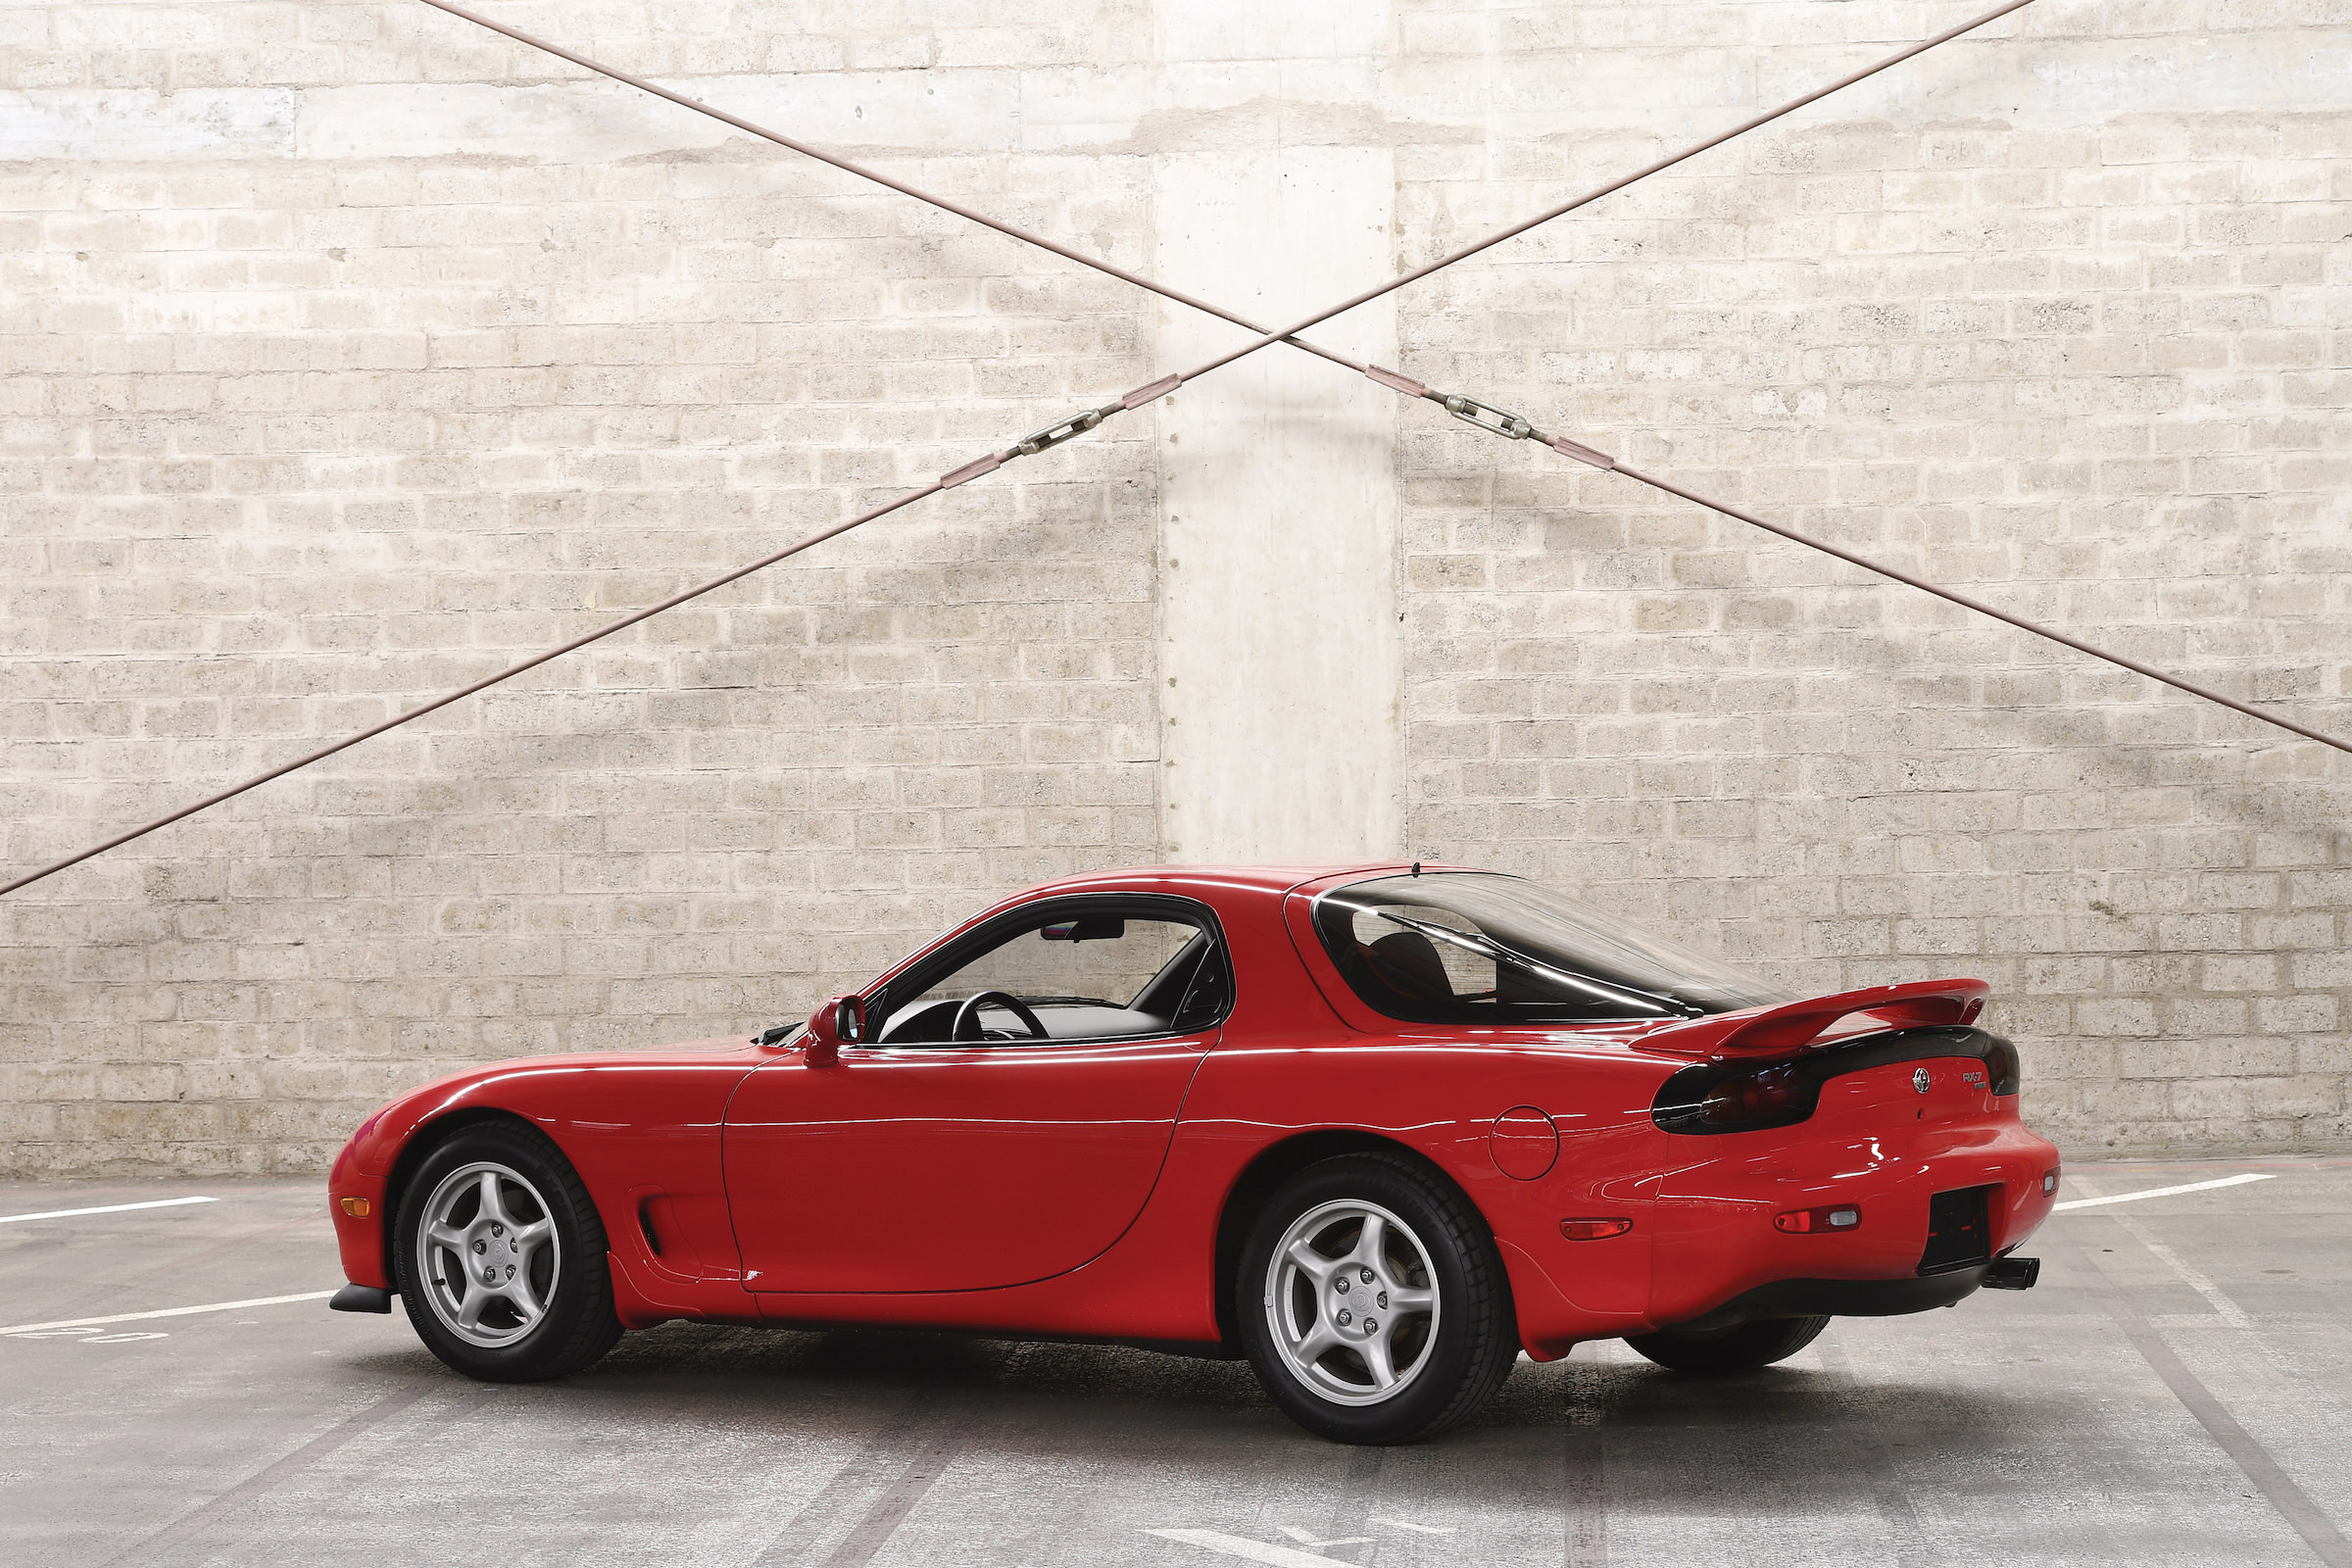 mazda rx 7 the twin turbo rotary powerhouse. Black Bedroom Furniture Sets. Home Design Ideas